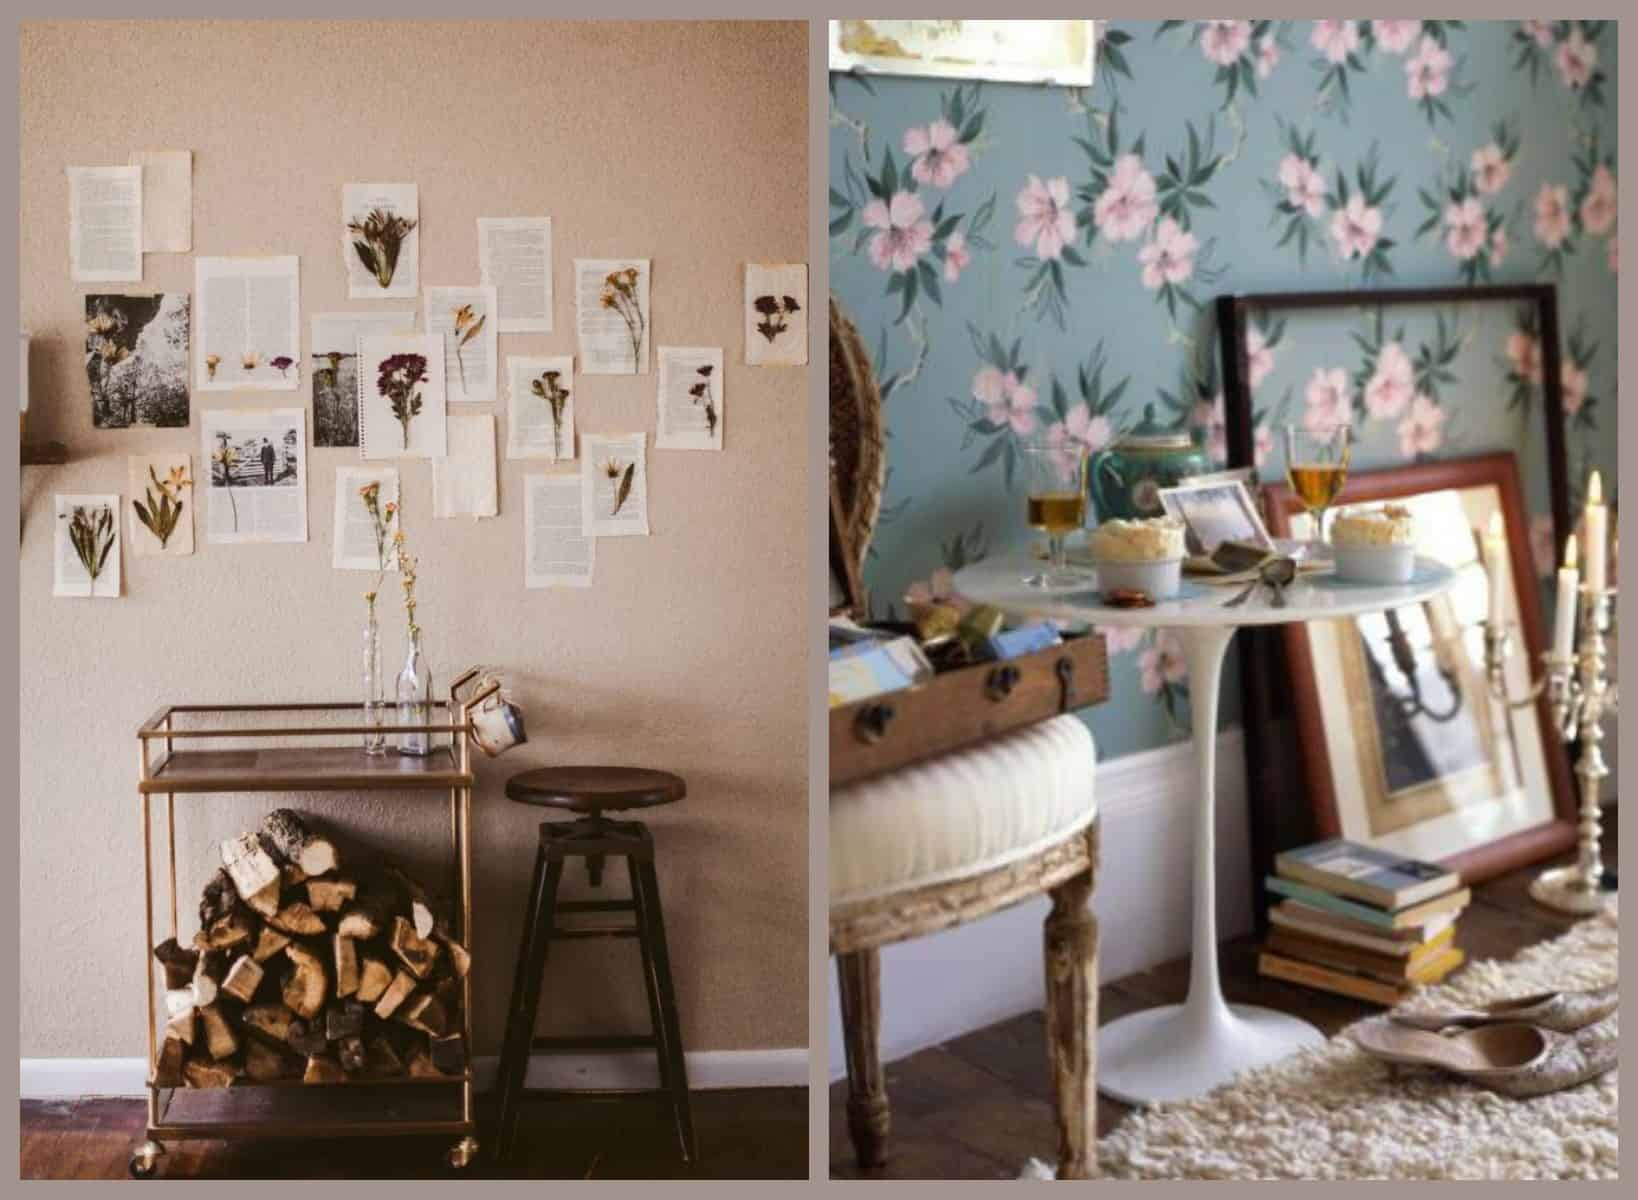 Diy 10 idee su come decorare una parete di casa for Decorare parete salotto